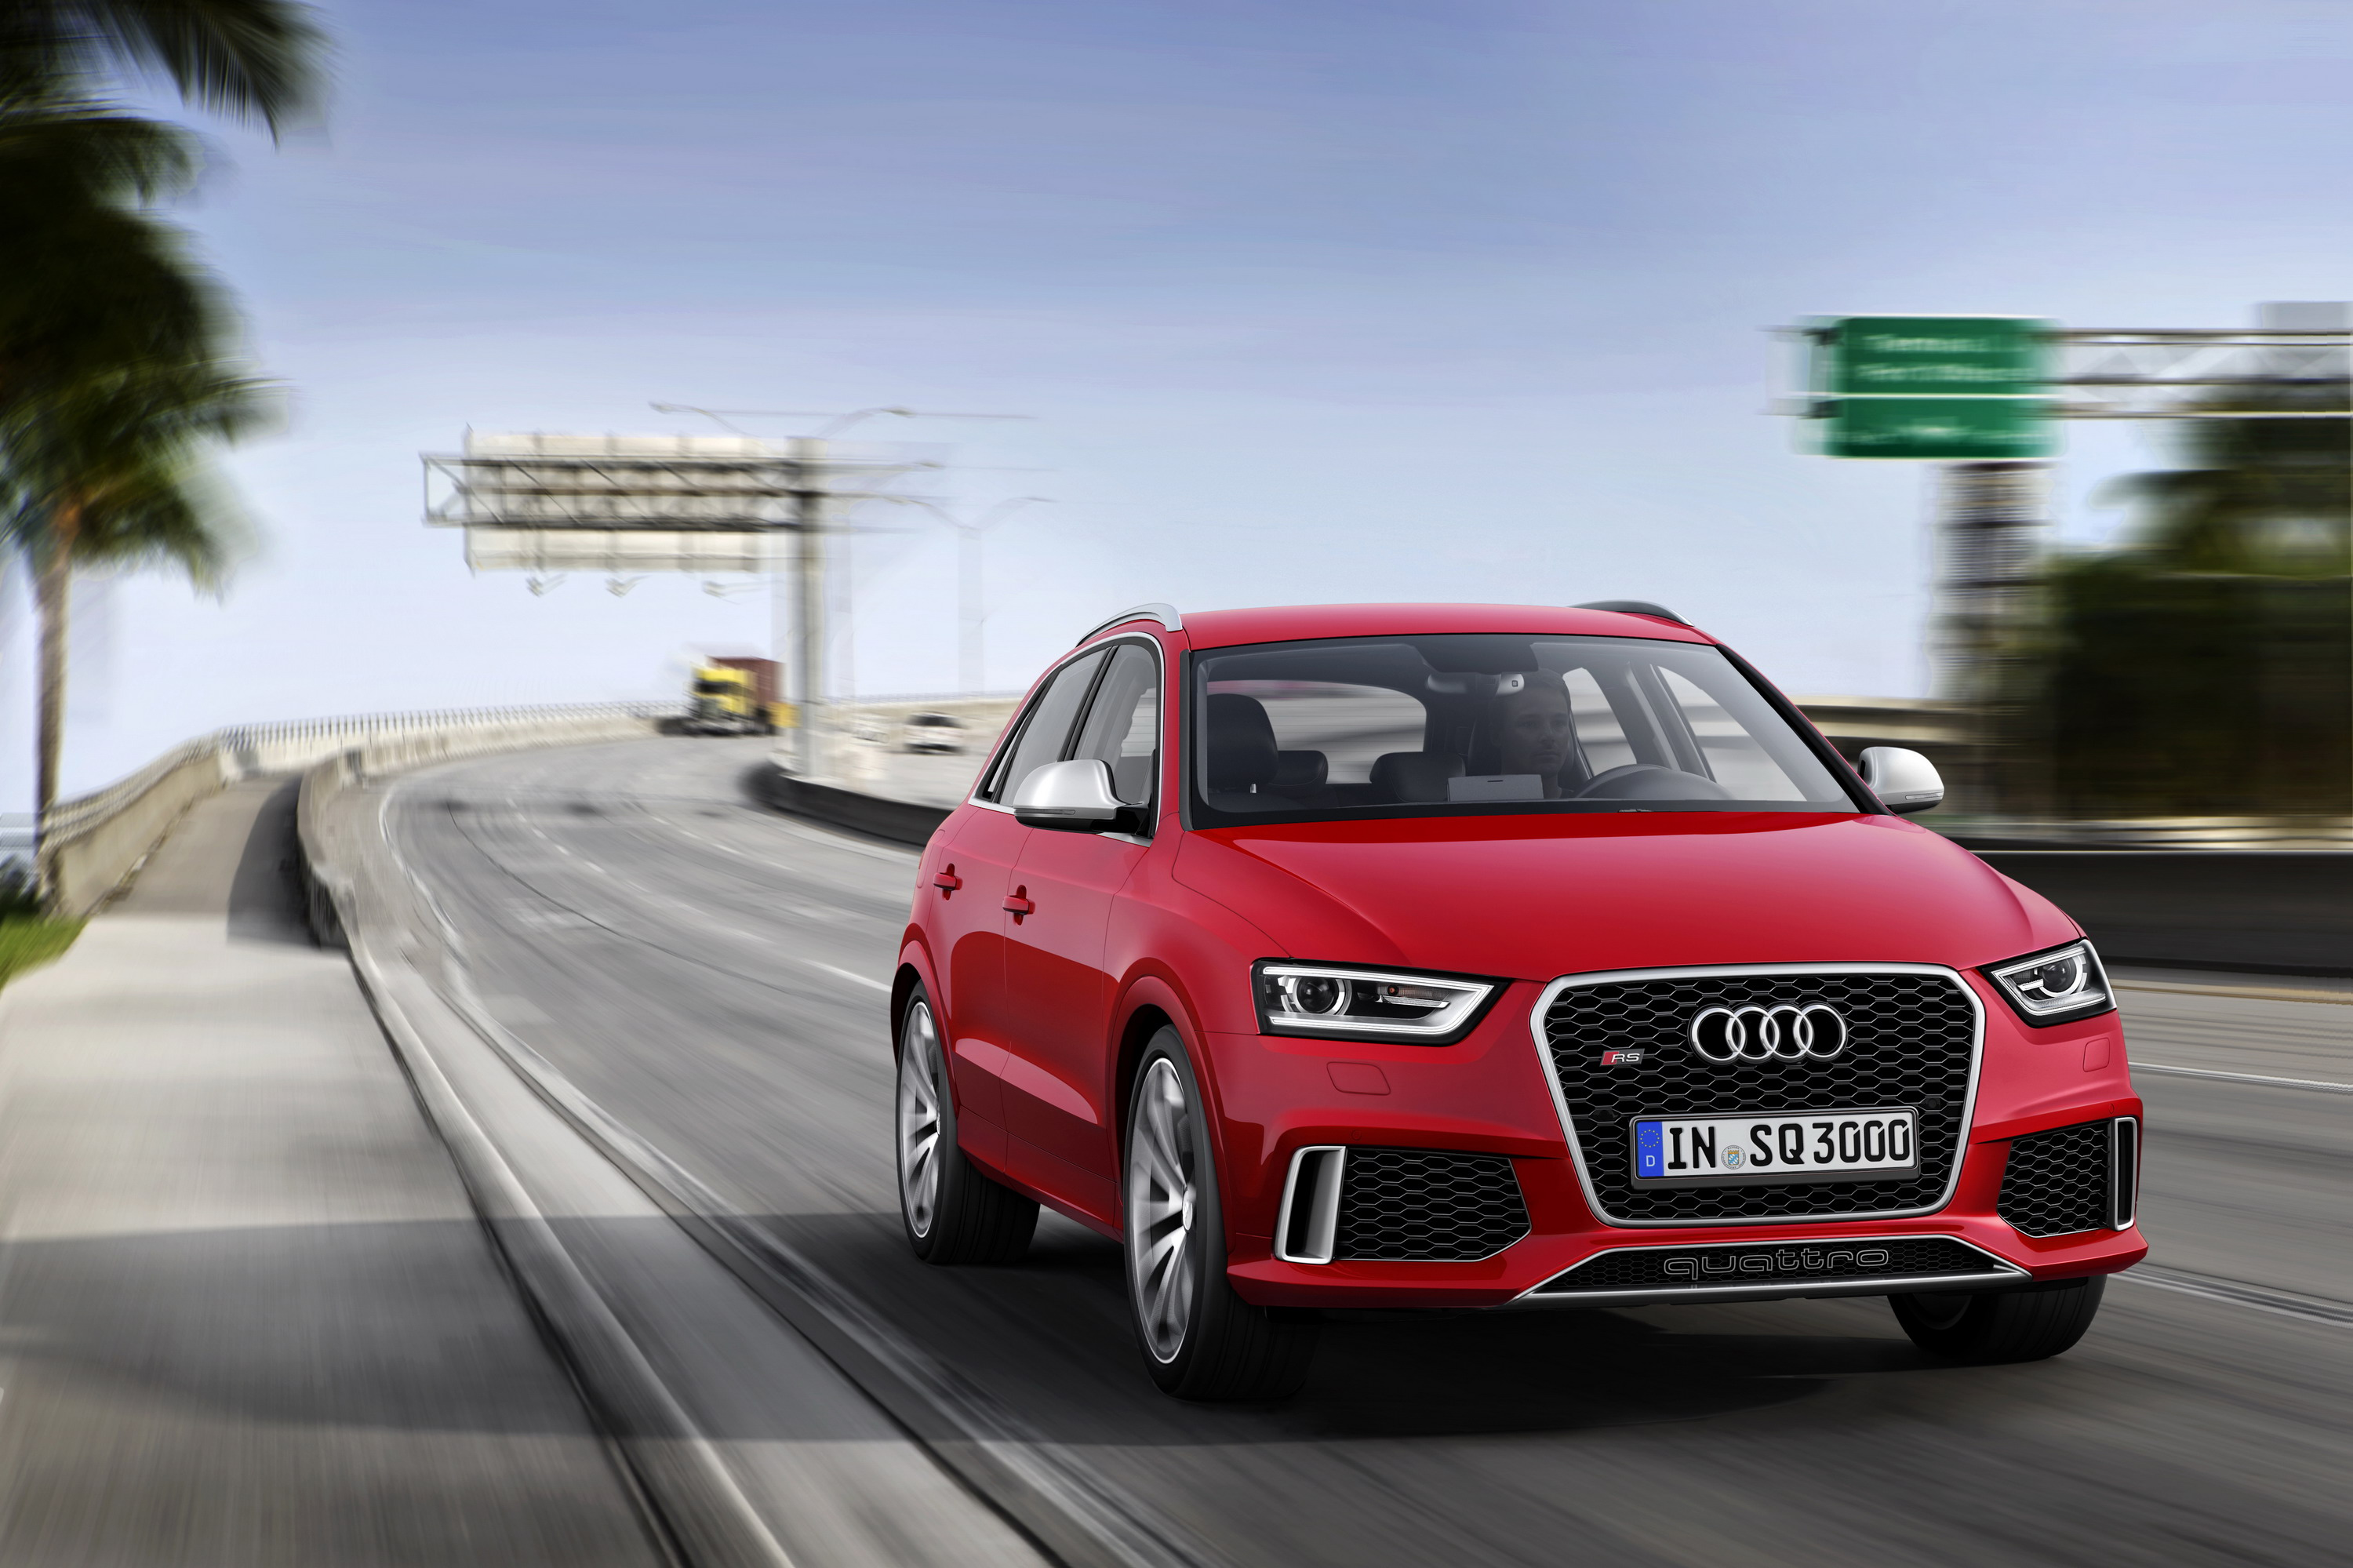 2014 audi rs q3 review top speed. Black Bedroom Furniture Sets. Home Design Ideas